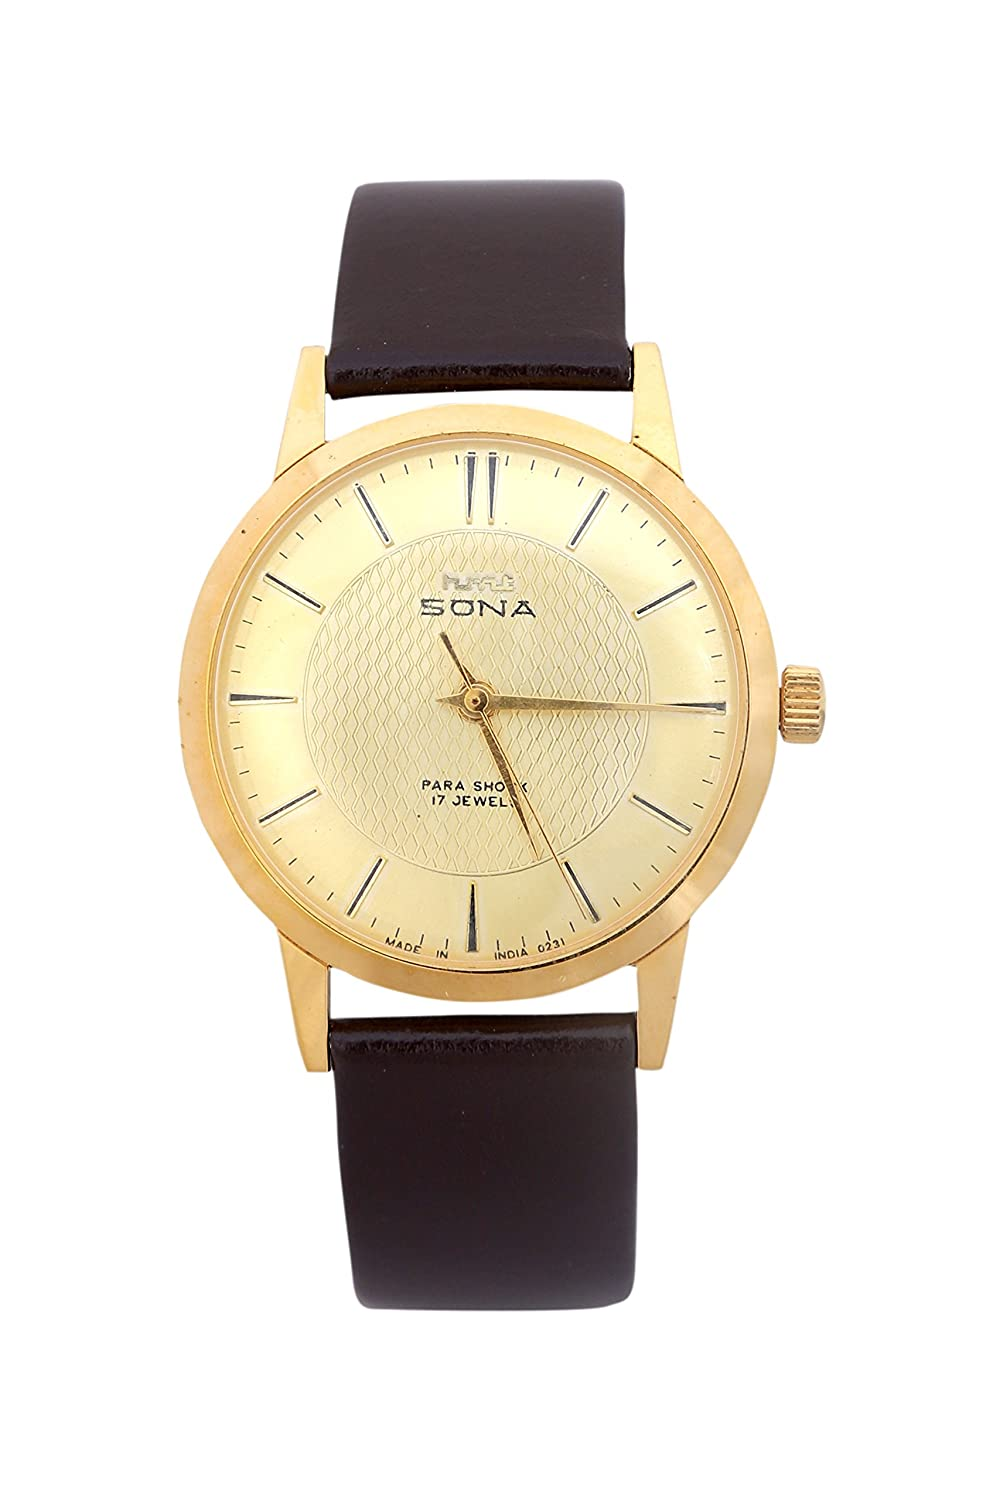 sona get offers best on brands lowest by flipkartrs watches as watch for analog price sonata june page wrist original